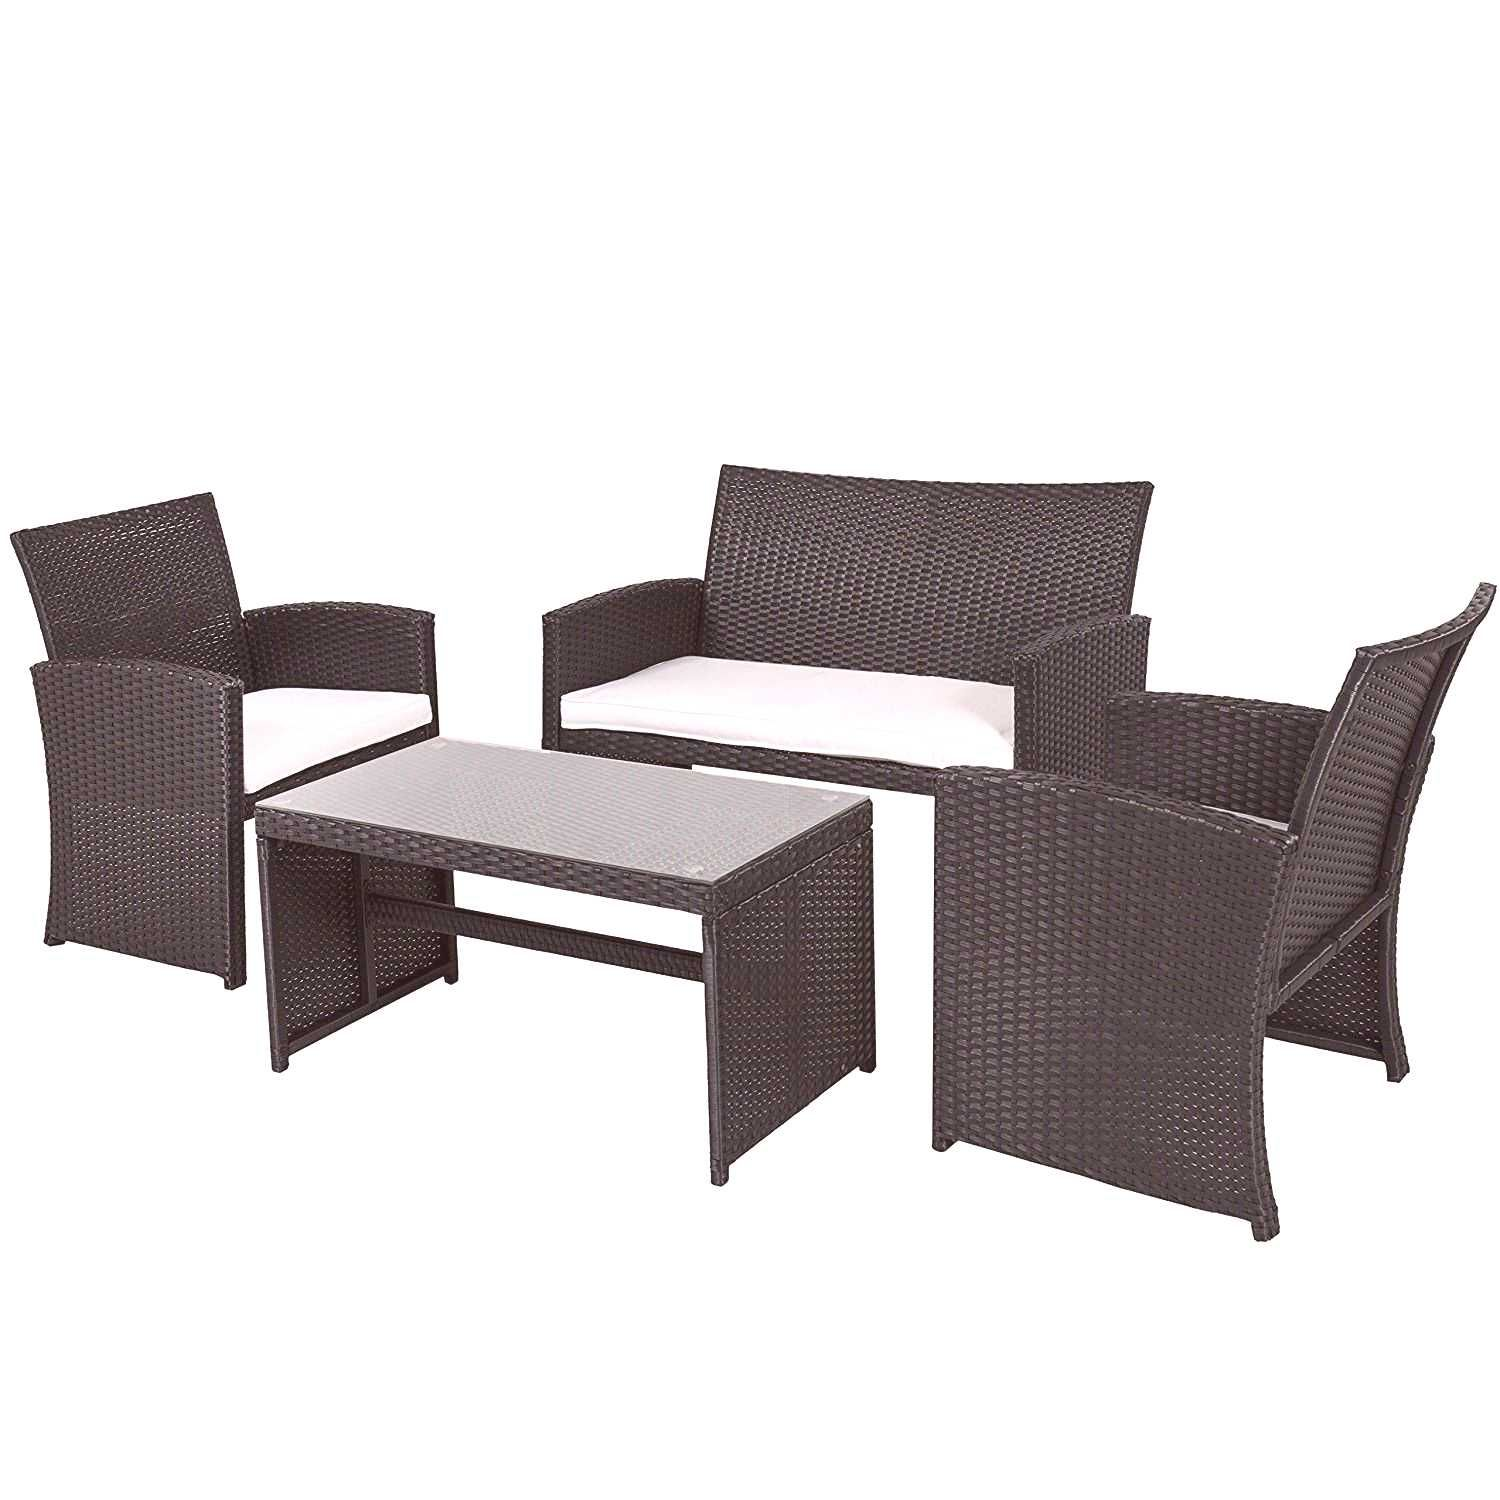 #cushions4piece #furniture #cushions #outdoor #wicker #4piece #white #resin #black #patio #with #seat #set Black Resin Wicker 4-Piece Outdoor Patio Furniture Set with ...